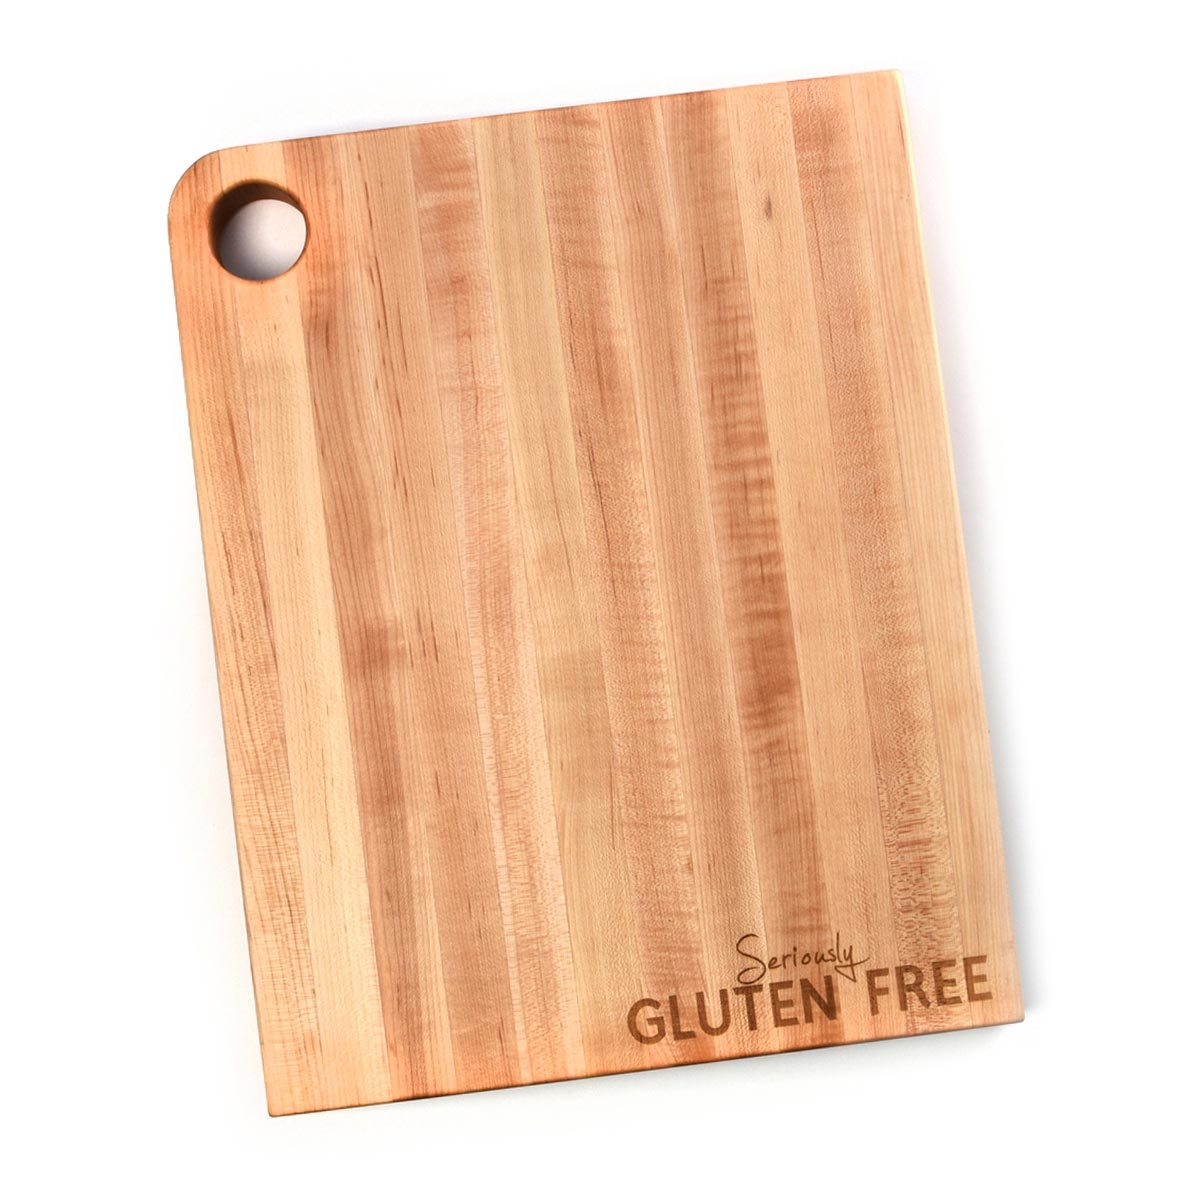 Gluten free products - cutting board